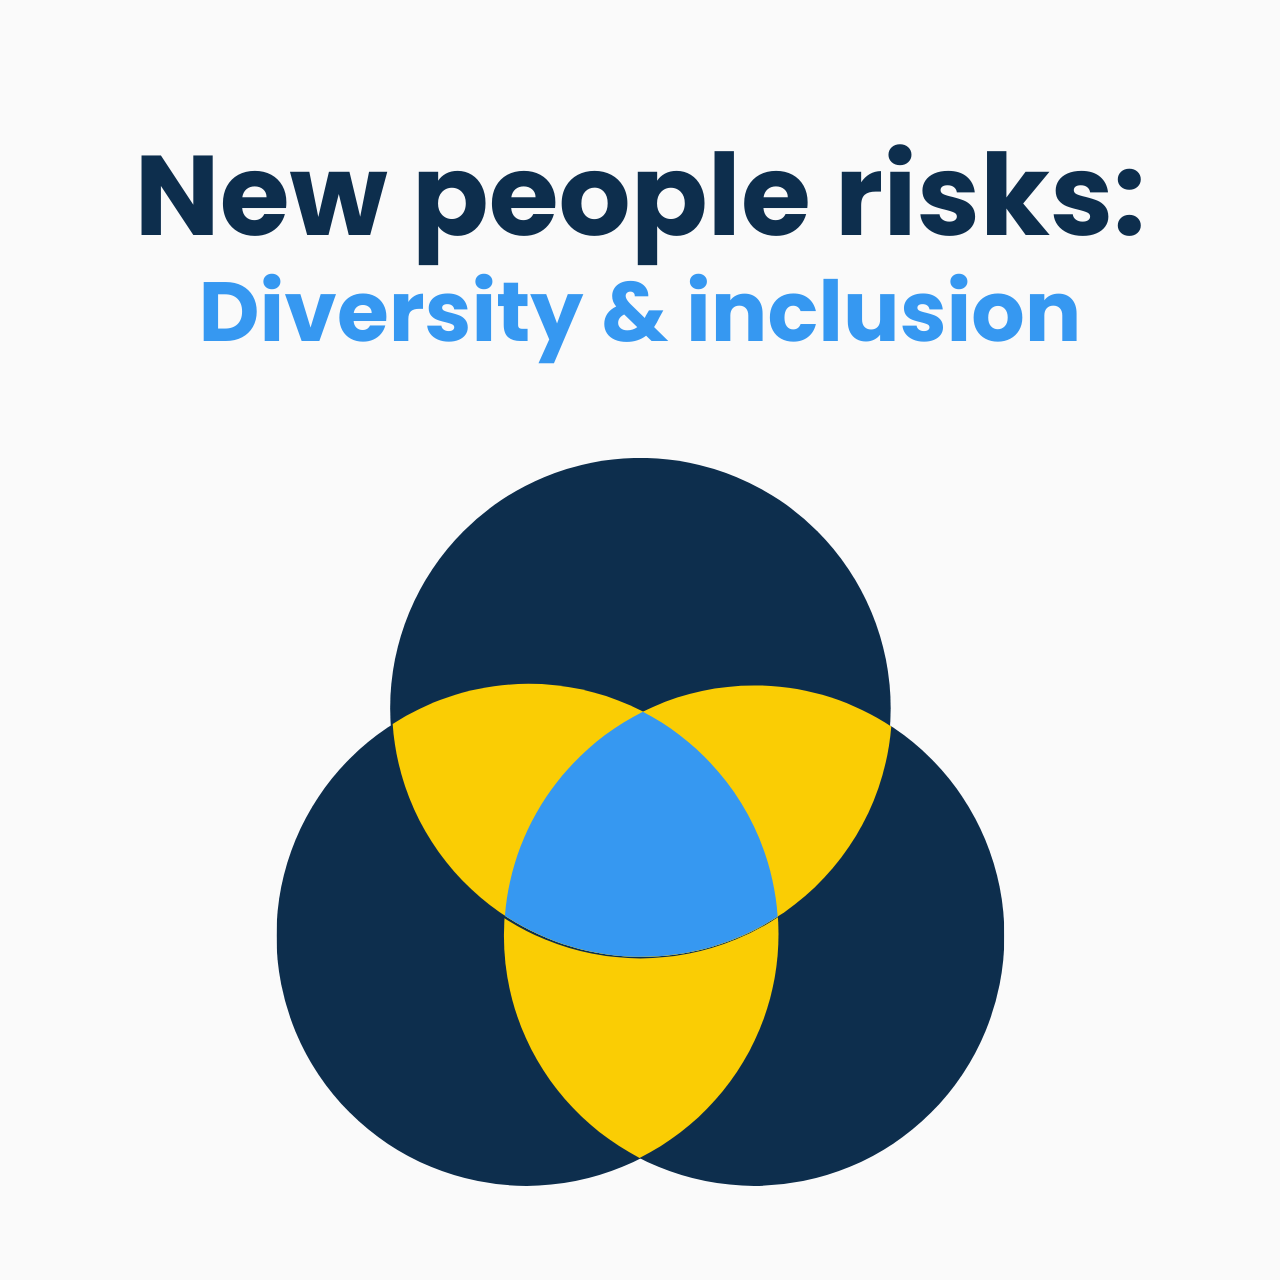 Diversity & inclusion: 1 of 6 new people risks in a hybrid work environment